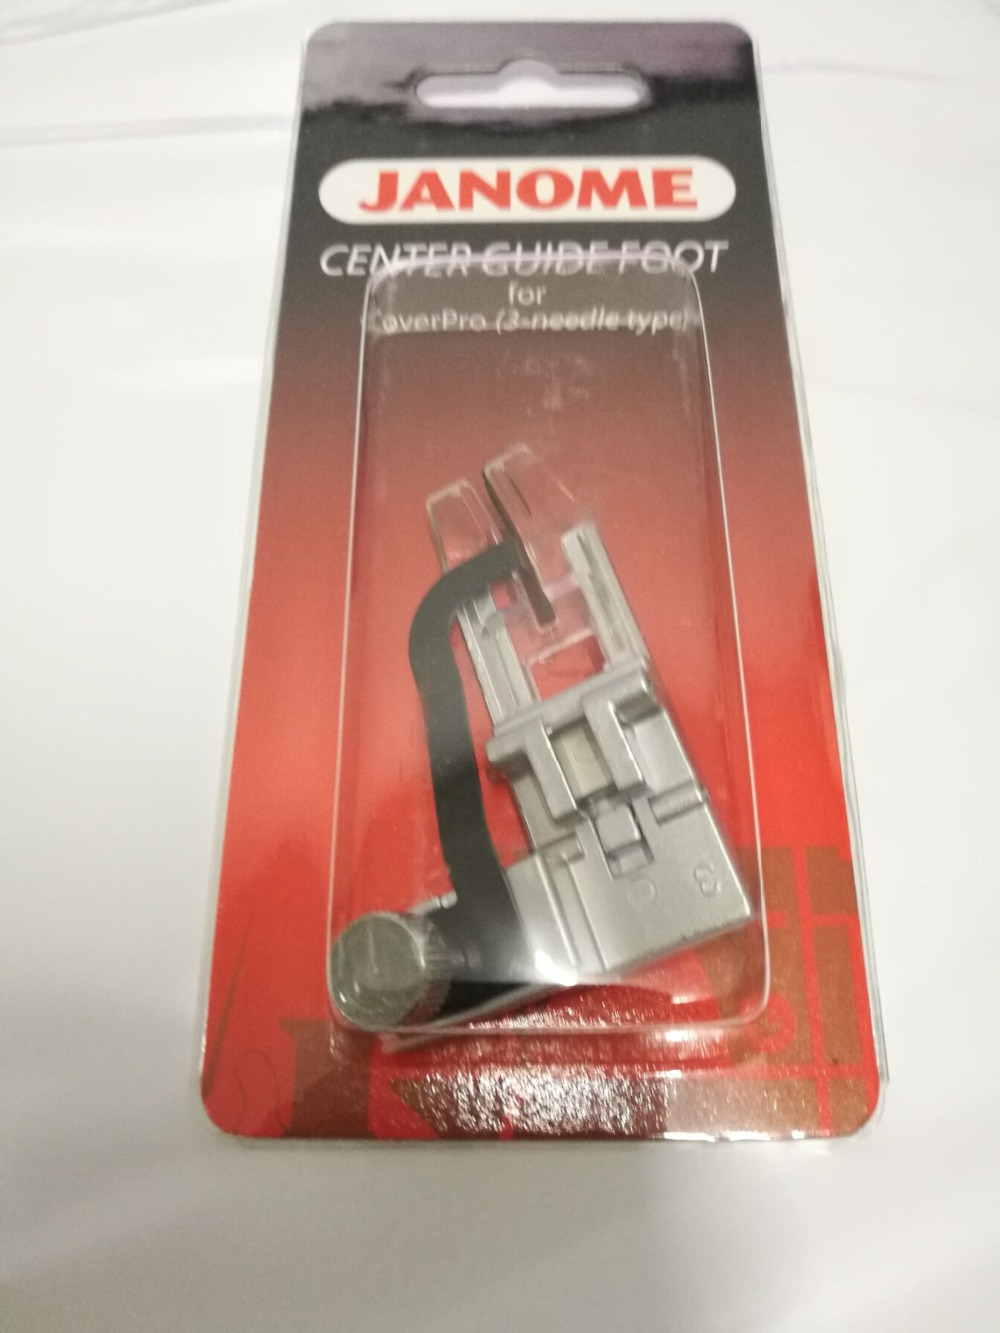 CENTER GUIDE FOOT #795819108 FOR JANOME 1000CPX COVERPRO COVERSTITCH MACHINE